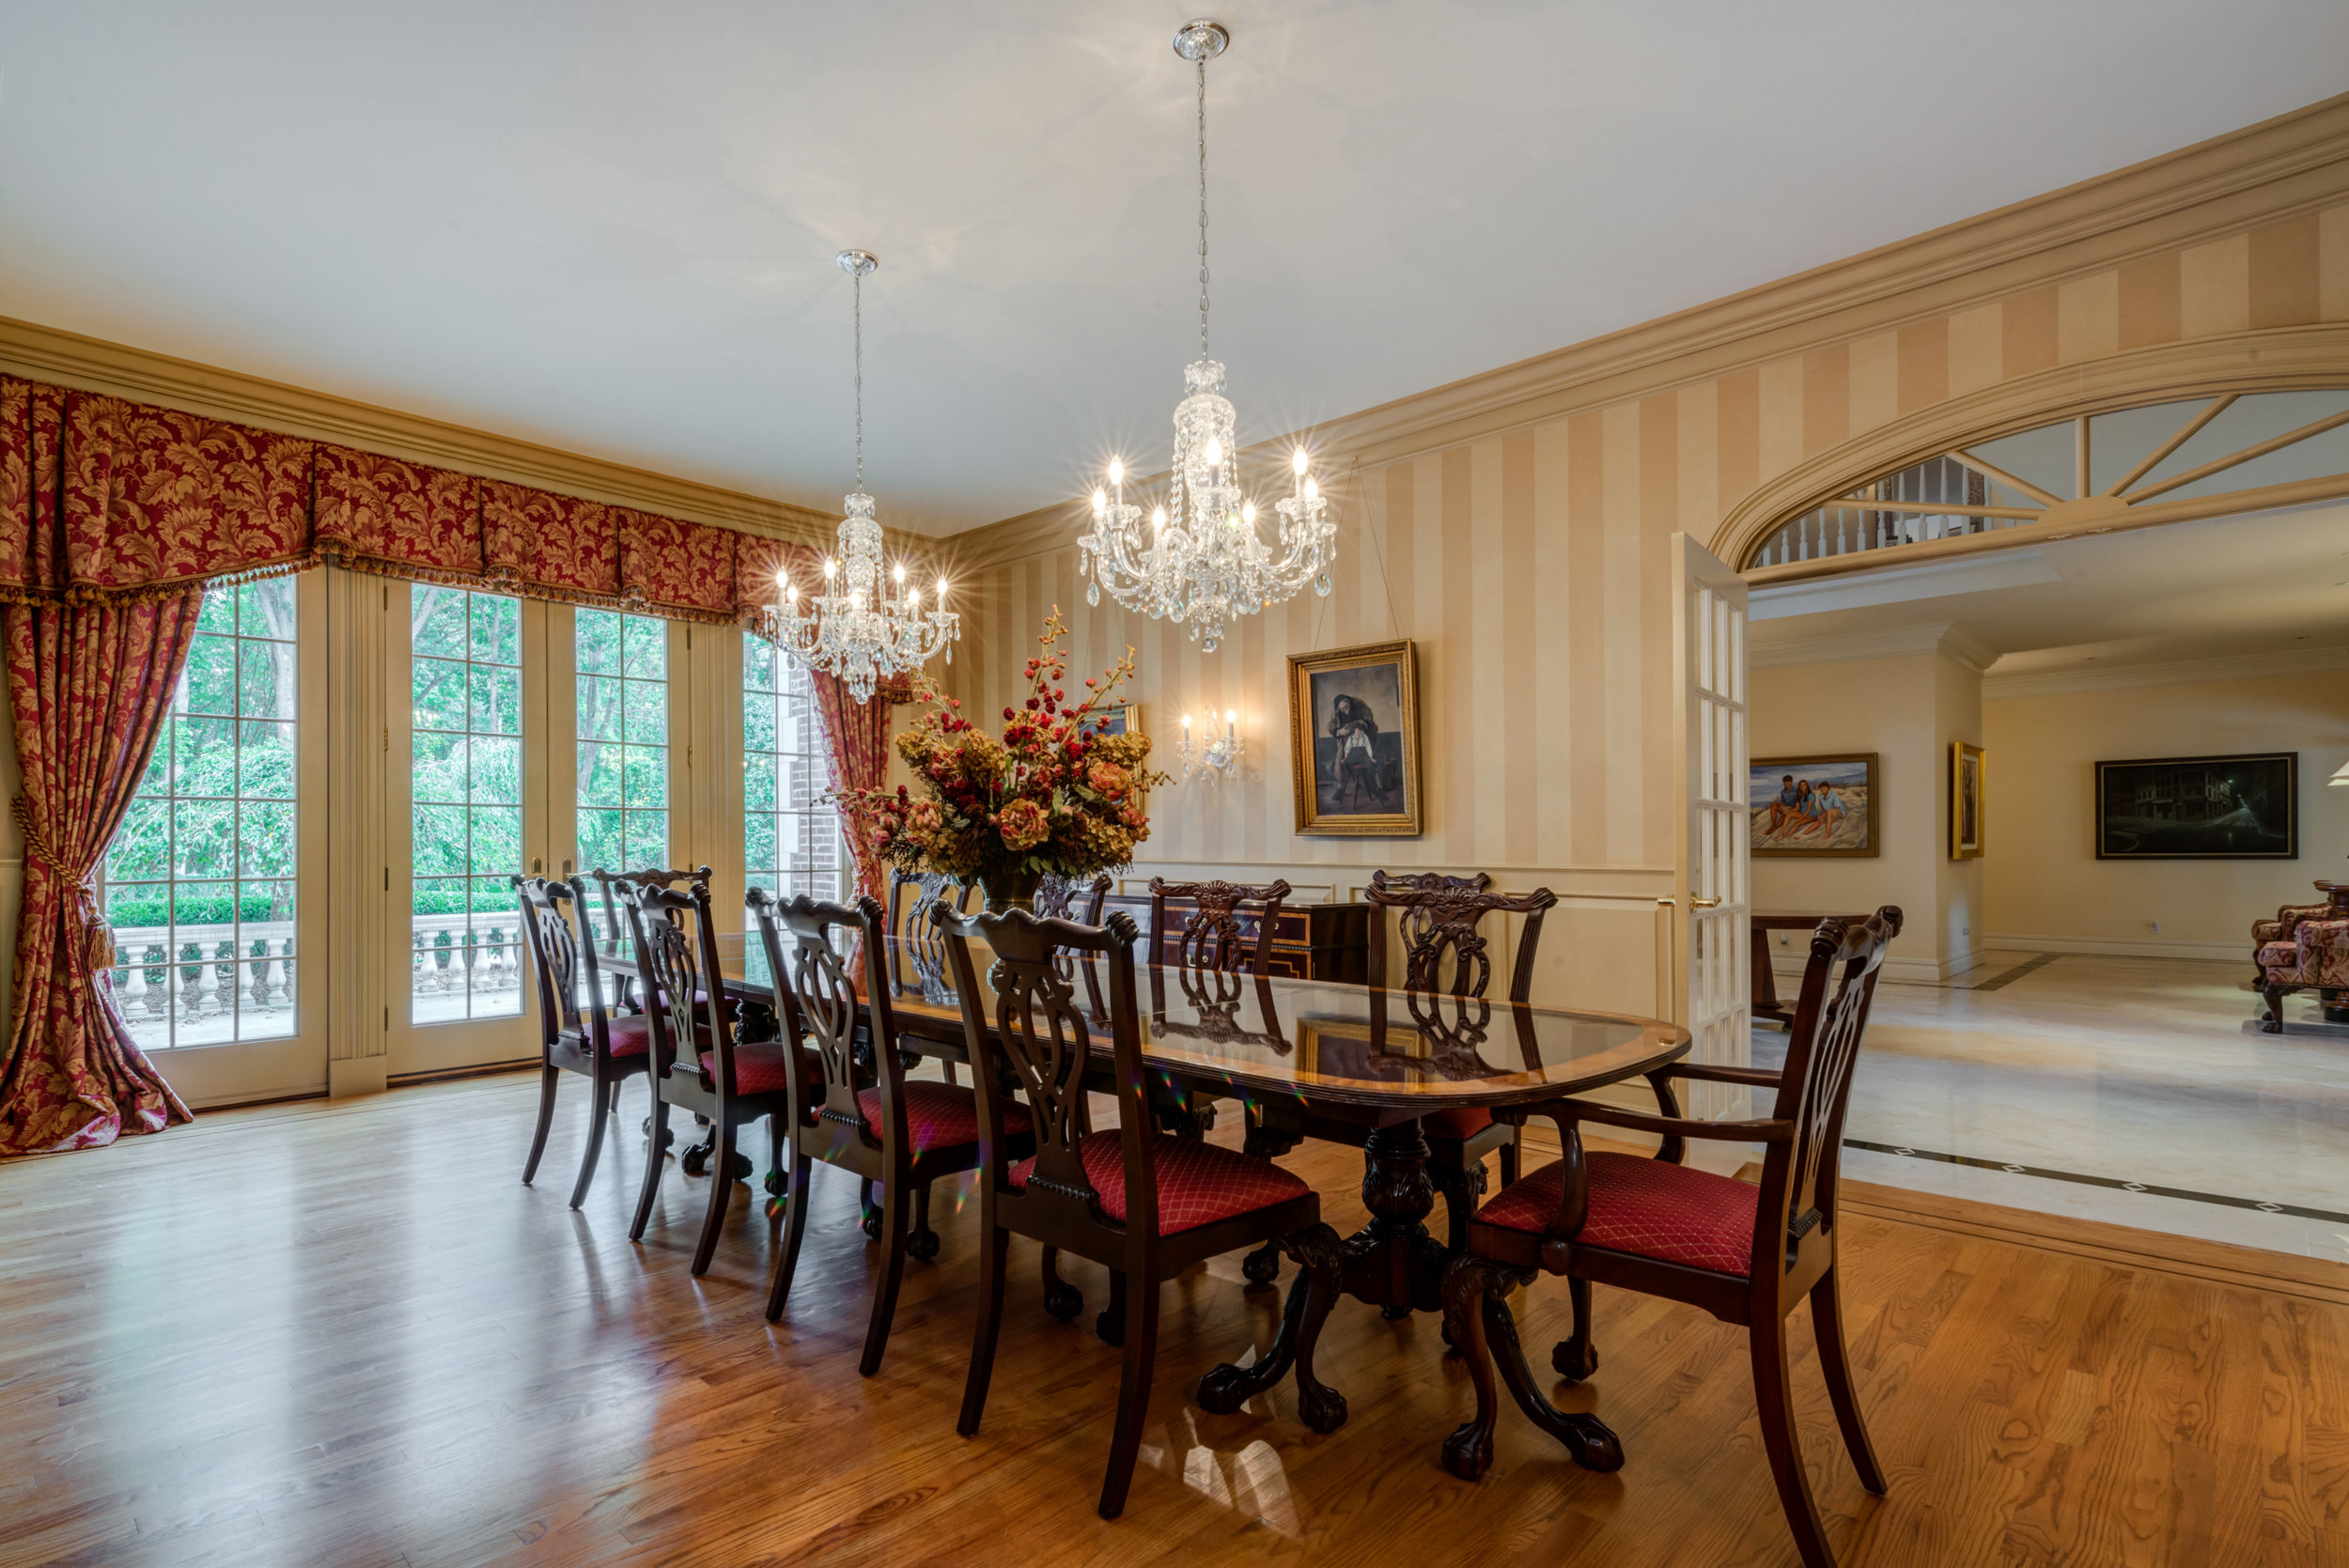 Featured Listing: Tour A Stunning, Ultra-Private English Manor Estate In Backcountry Greenwich